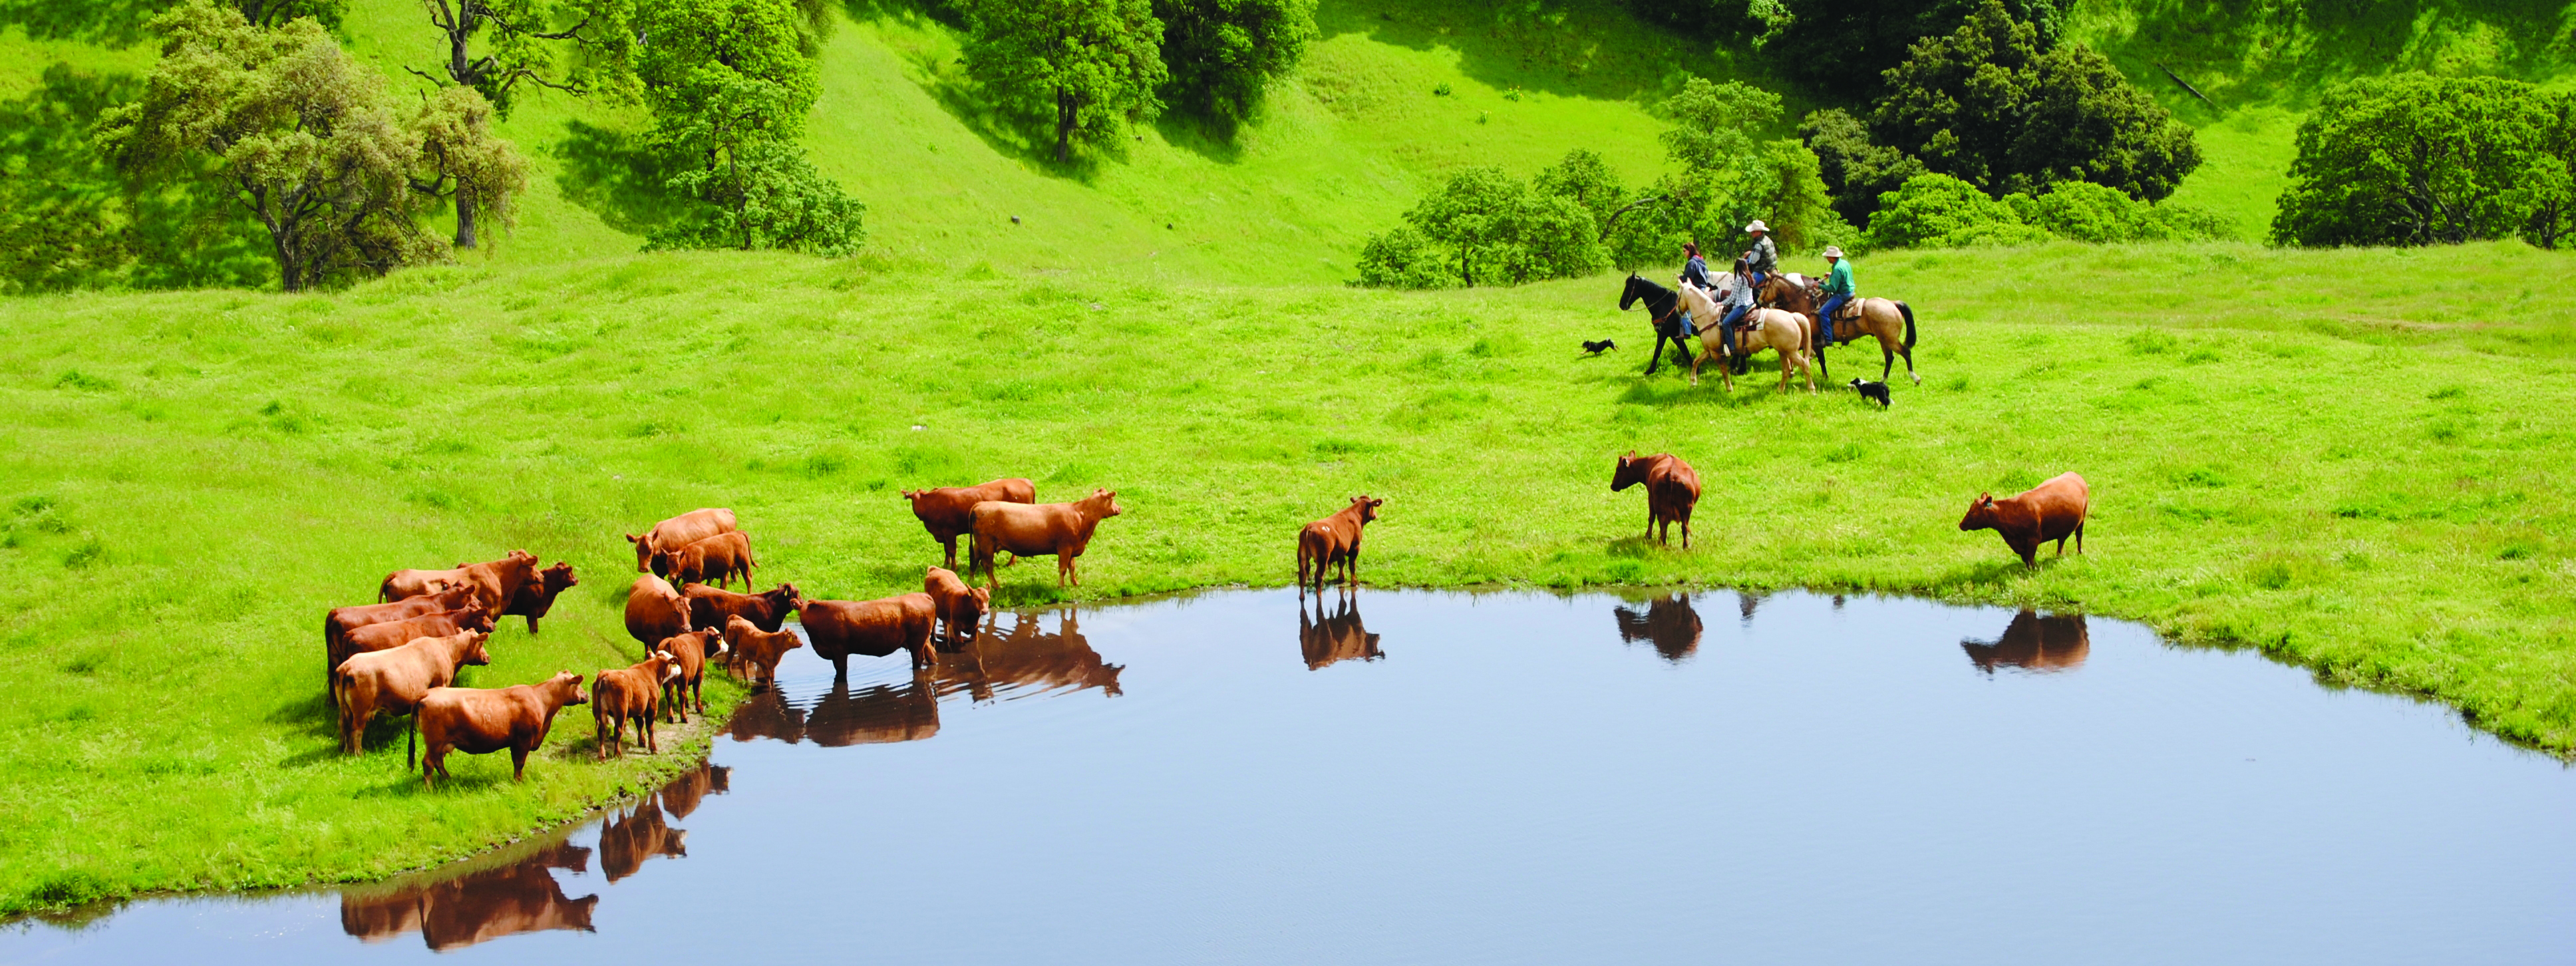 Herd of brown cows on green grass around a large pond, four riders on horses circling the cows